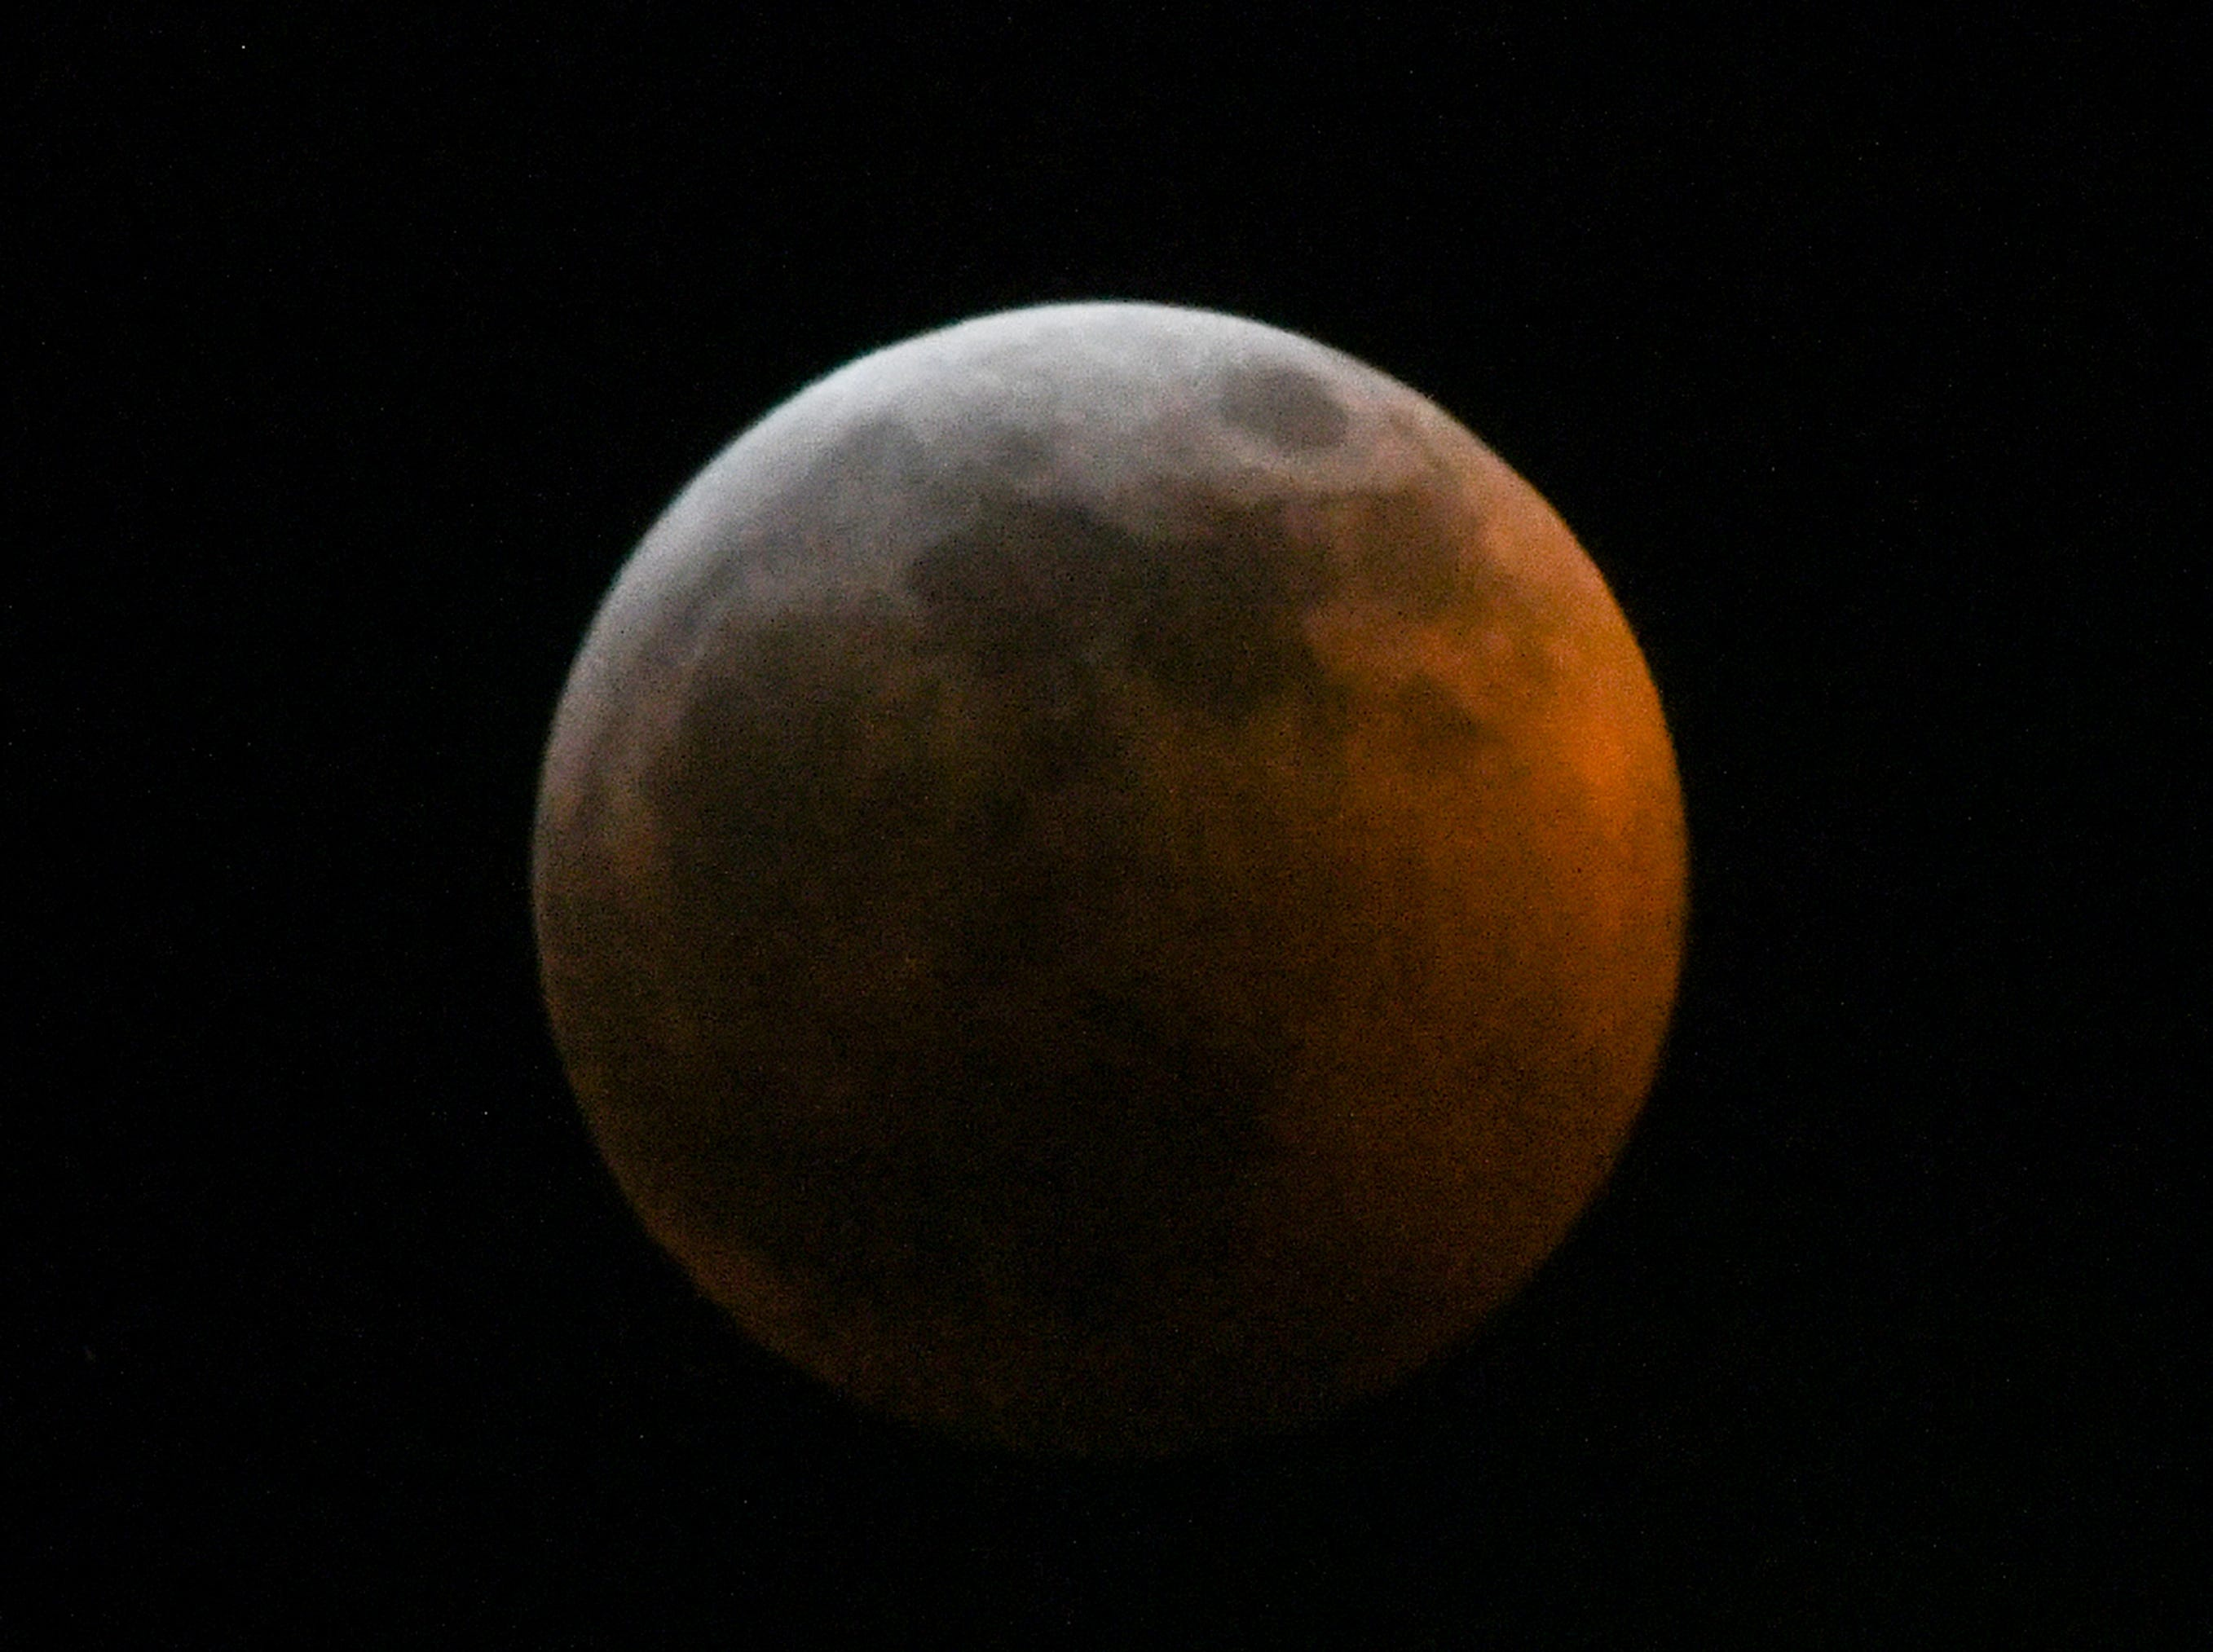 The Super blood wolf moon total lunar eclipse, at 11:45 p.m. (EST) January 20, 2019, shortly after when the moon edged into Earth's shadow and became darkened at 11:41 p.m., seen from Anderson, S.C.